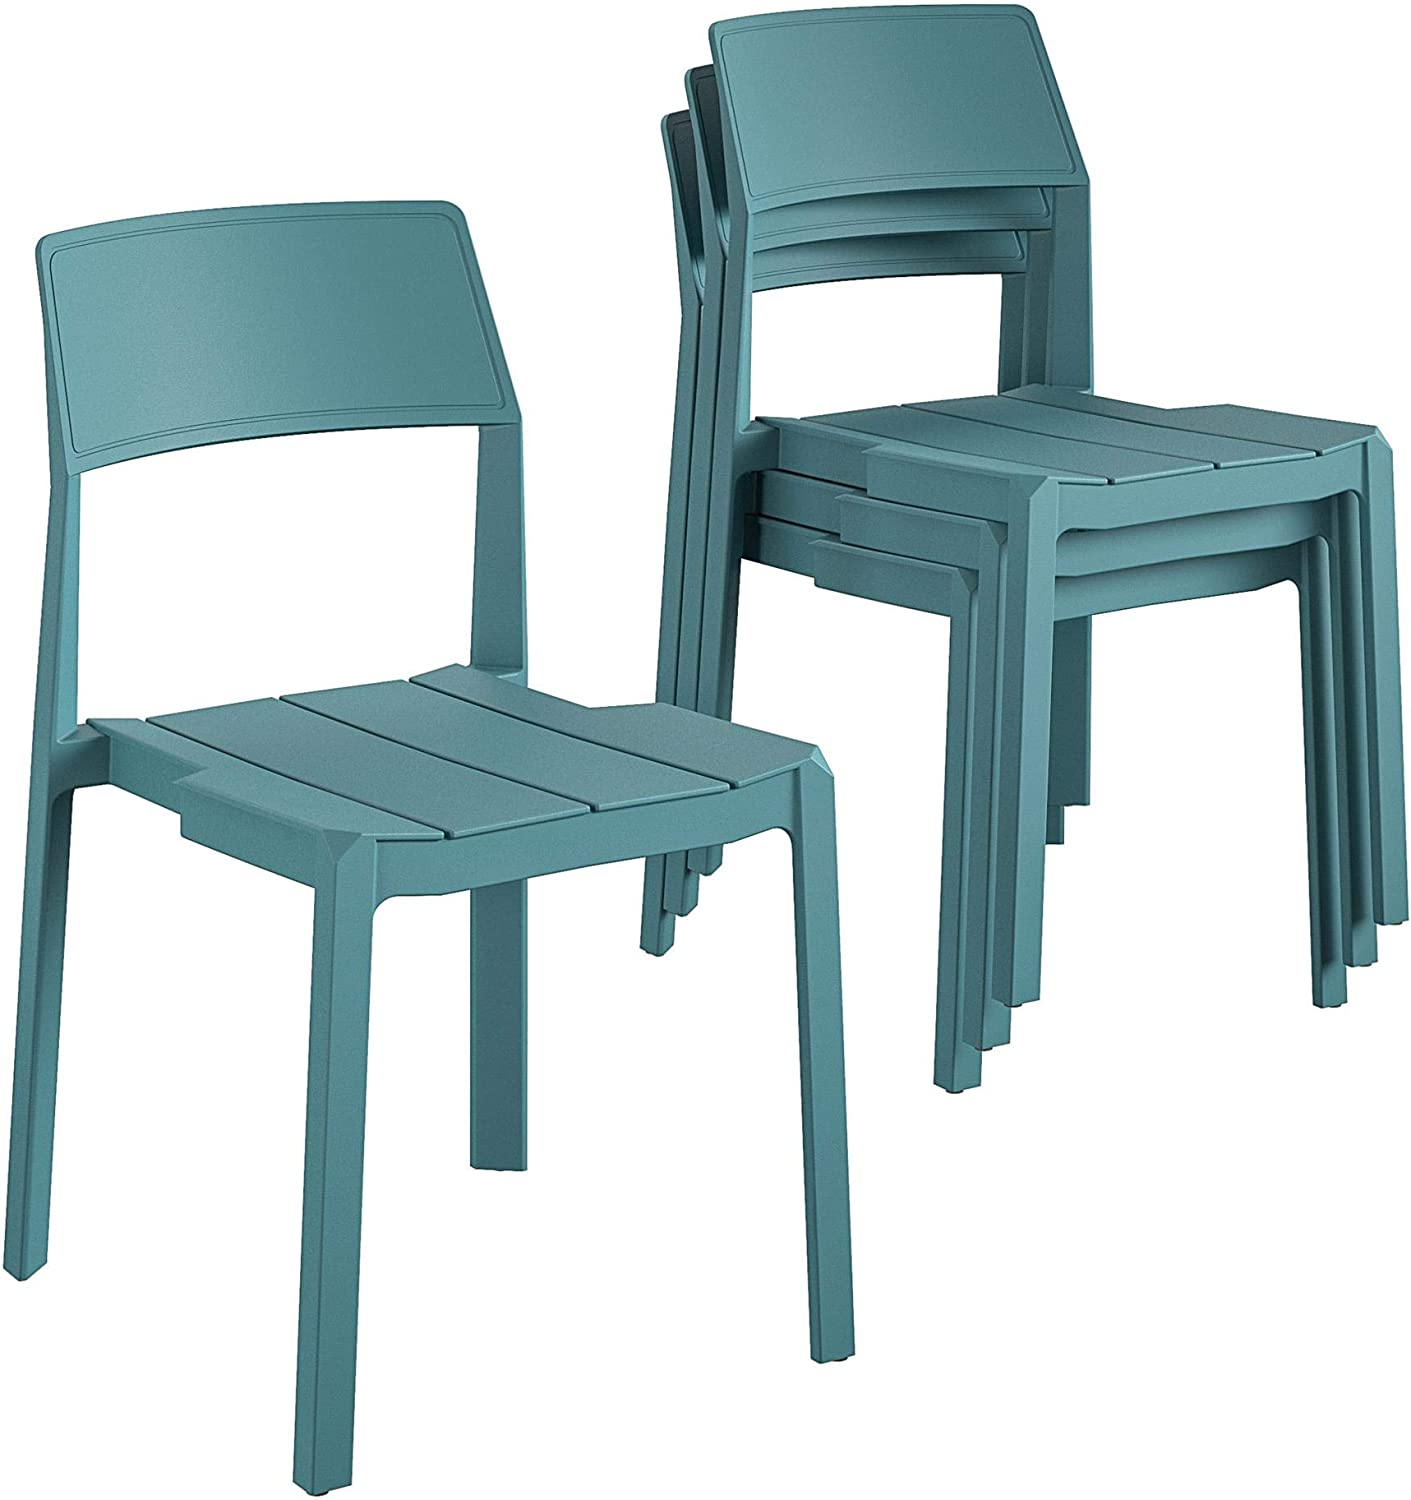 Novogratz Poolside Collection, Chandler Stacking, 4-Pack, Turquoise Dining Chairs